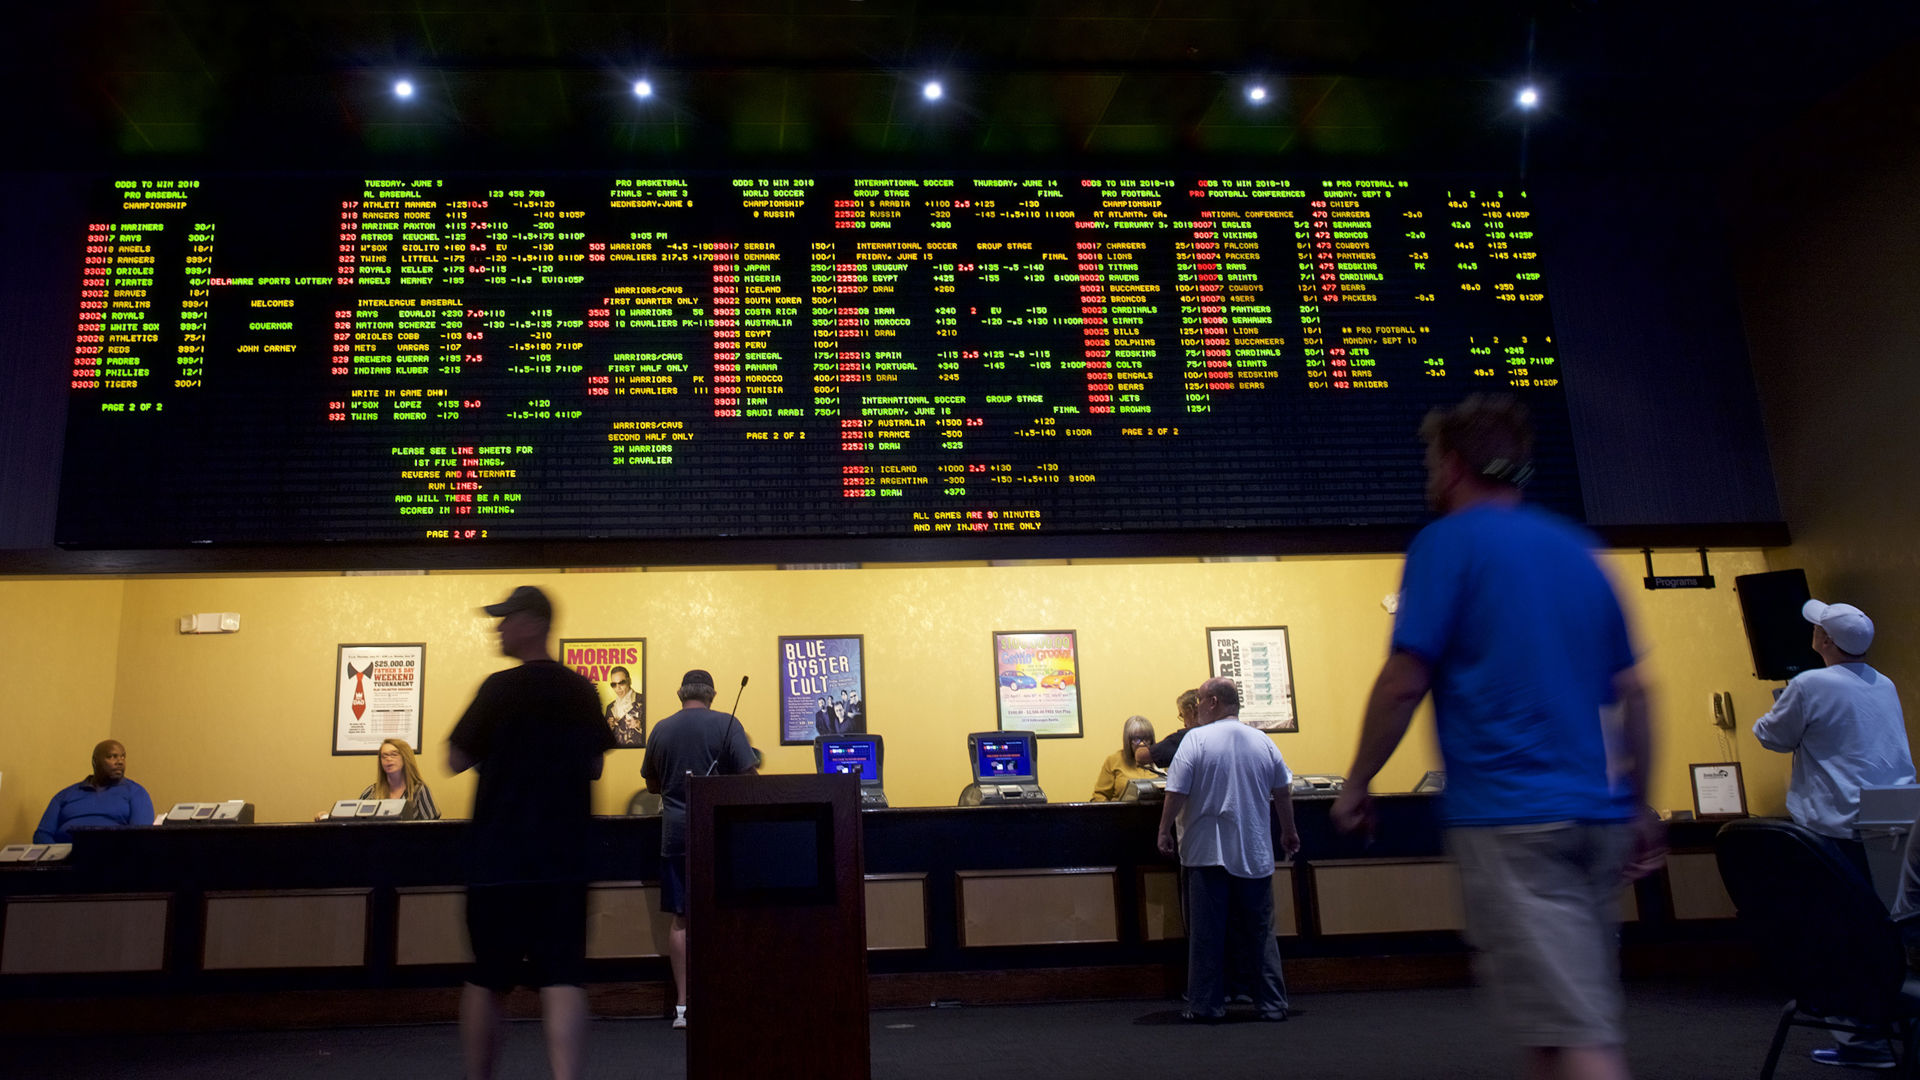 People place bets at Dover Downs Casino on June 5, 2018 in Dover, Delaware. (Credit: Mark Makela/Getty Images)